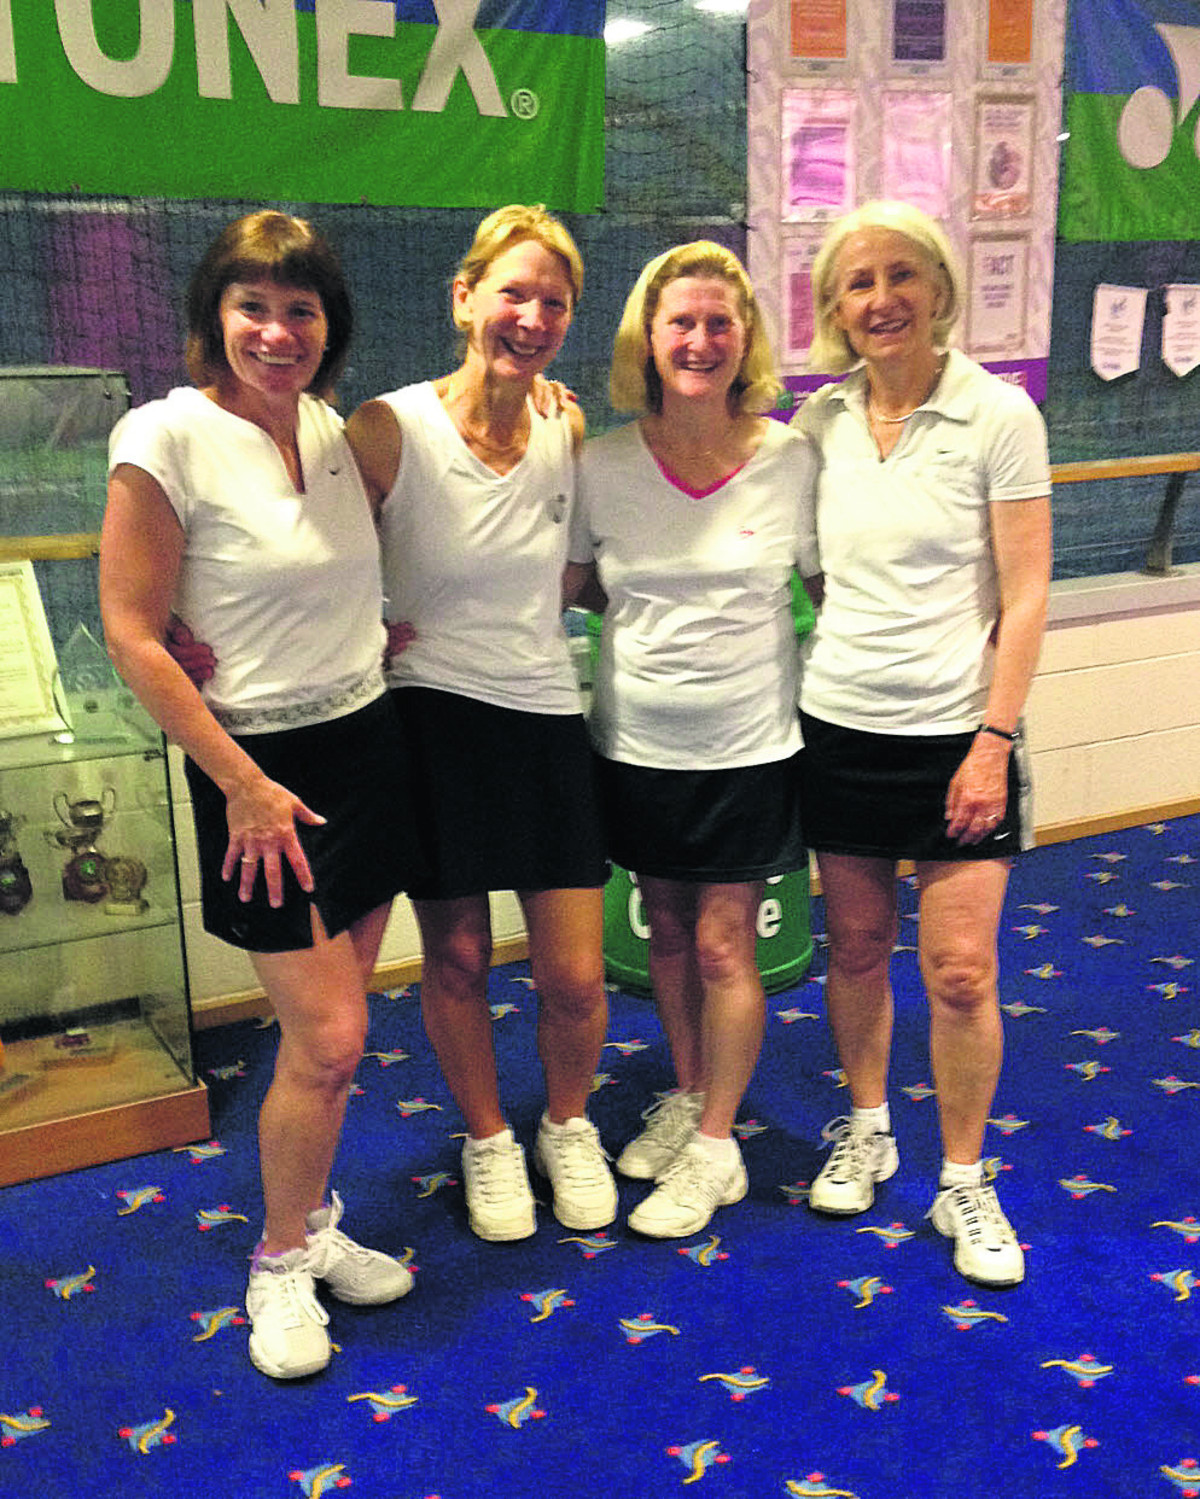 Oxfordshire's Over 50s women. From left: Tracey Hodson, Ruth Ballantyne, Mary Joyner and